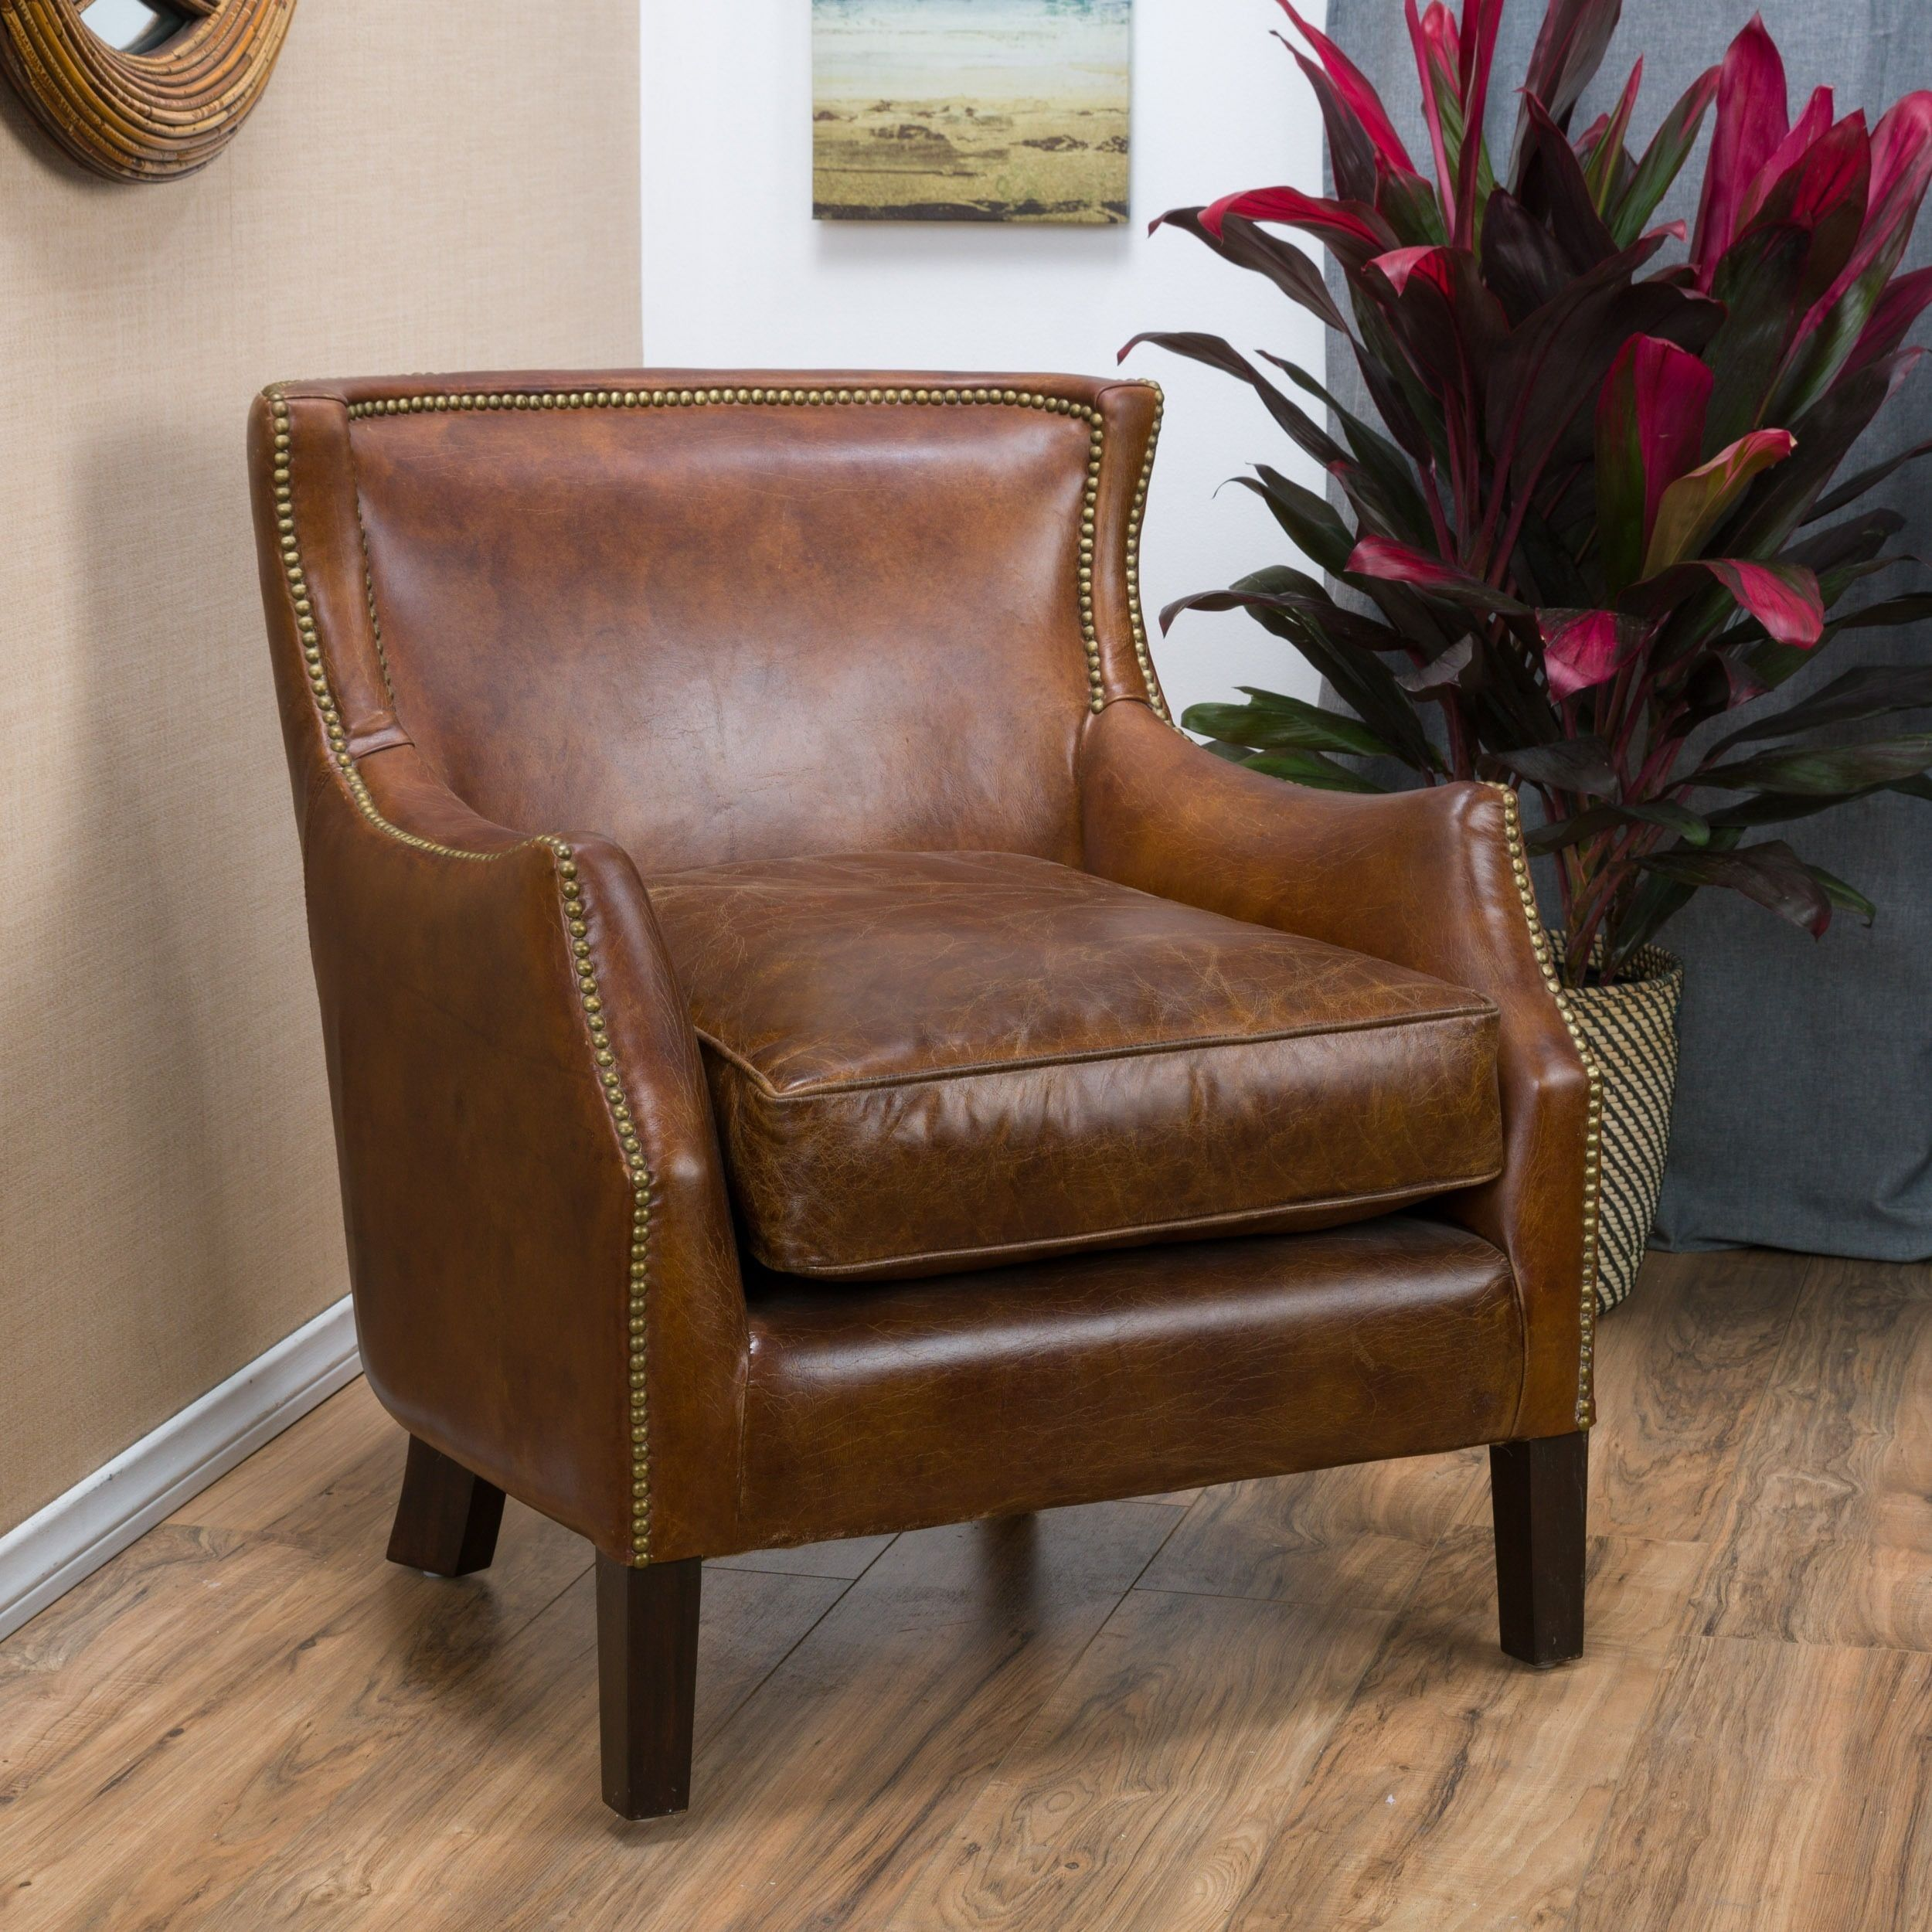 Leather Chairs Home Goods Free Shipping on orders over $45 at